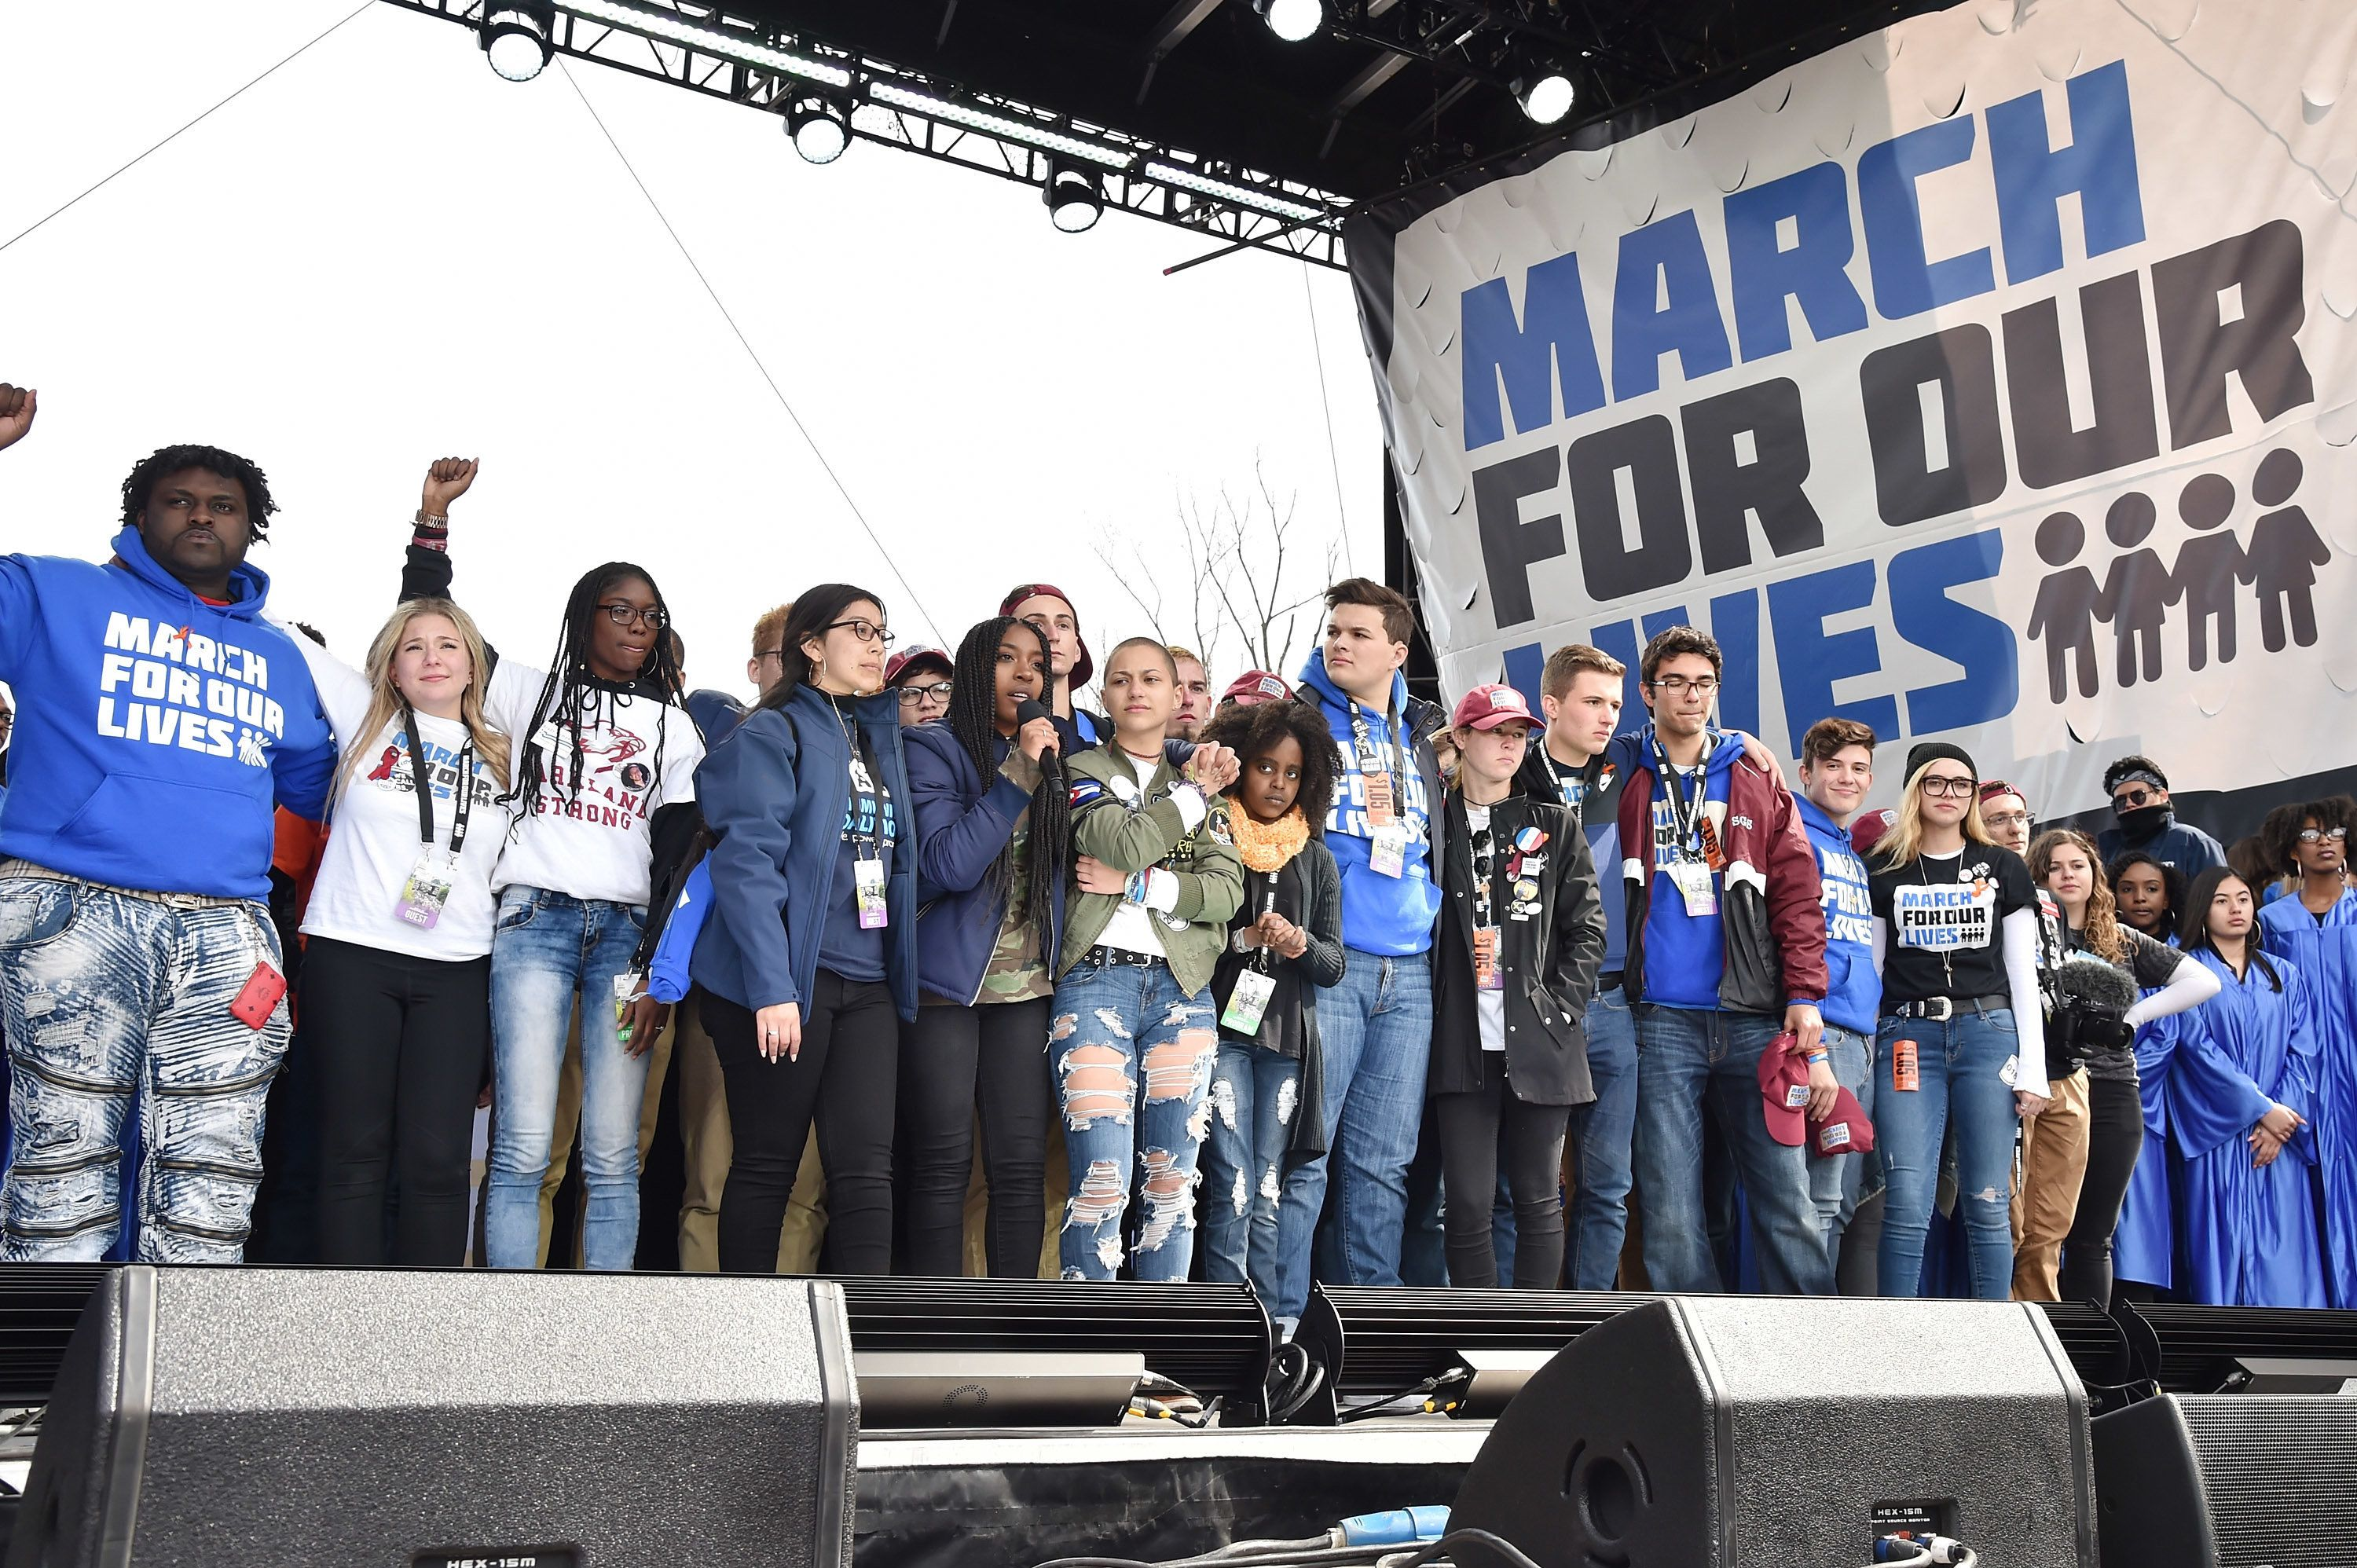 WASHINGTON, DC - MARCH 24:  Edna Chavez, Emma Gonzalez and Noami Wadler pose onstage with students at March For Our Lives on March 24, 2018 in Washington, DC.  (Photo by Kevin Mazur/Getty Images for March For Our Lives)